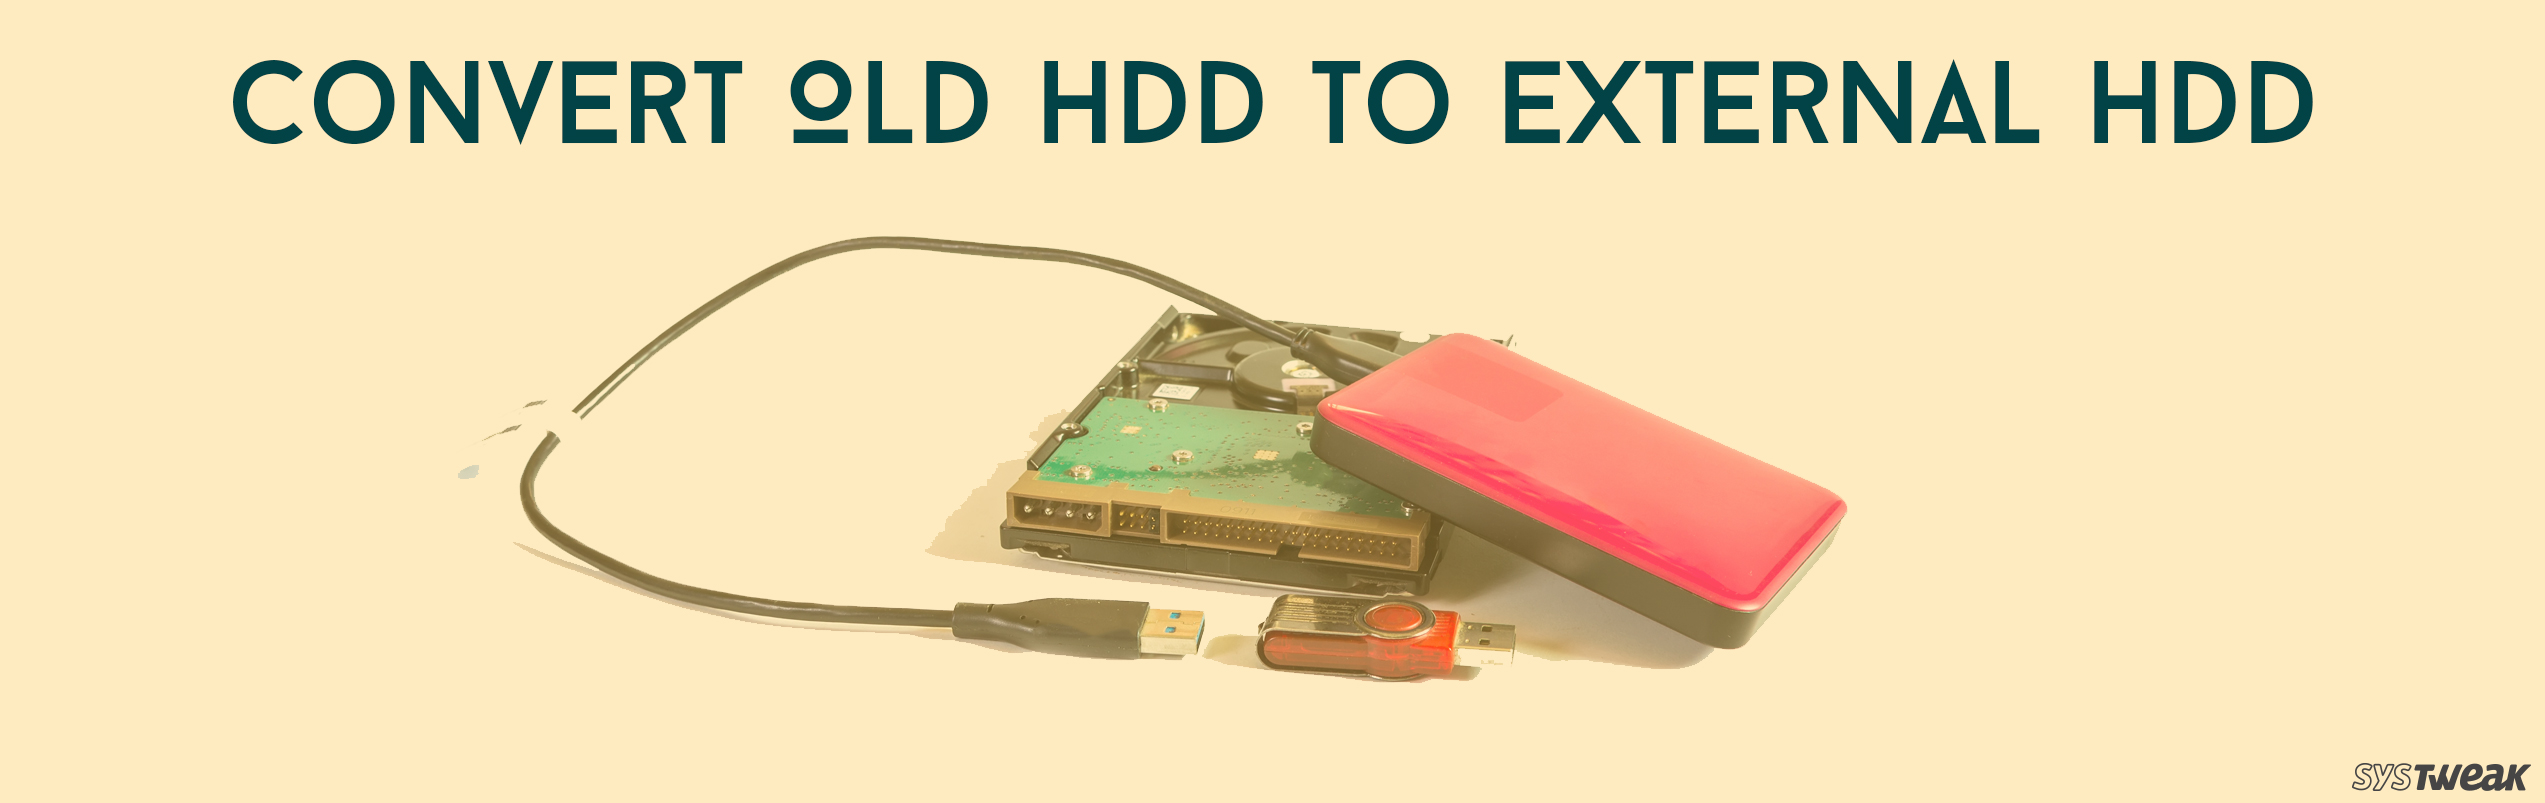 How To Convert Your Old Hard Drive To An External Drive